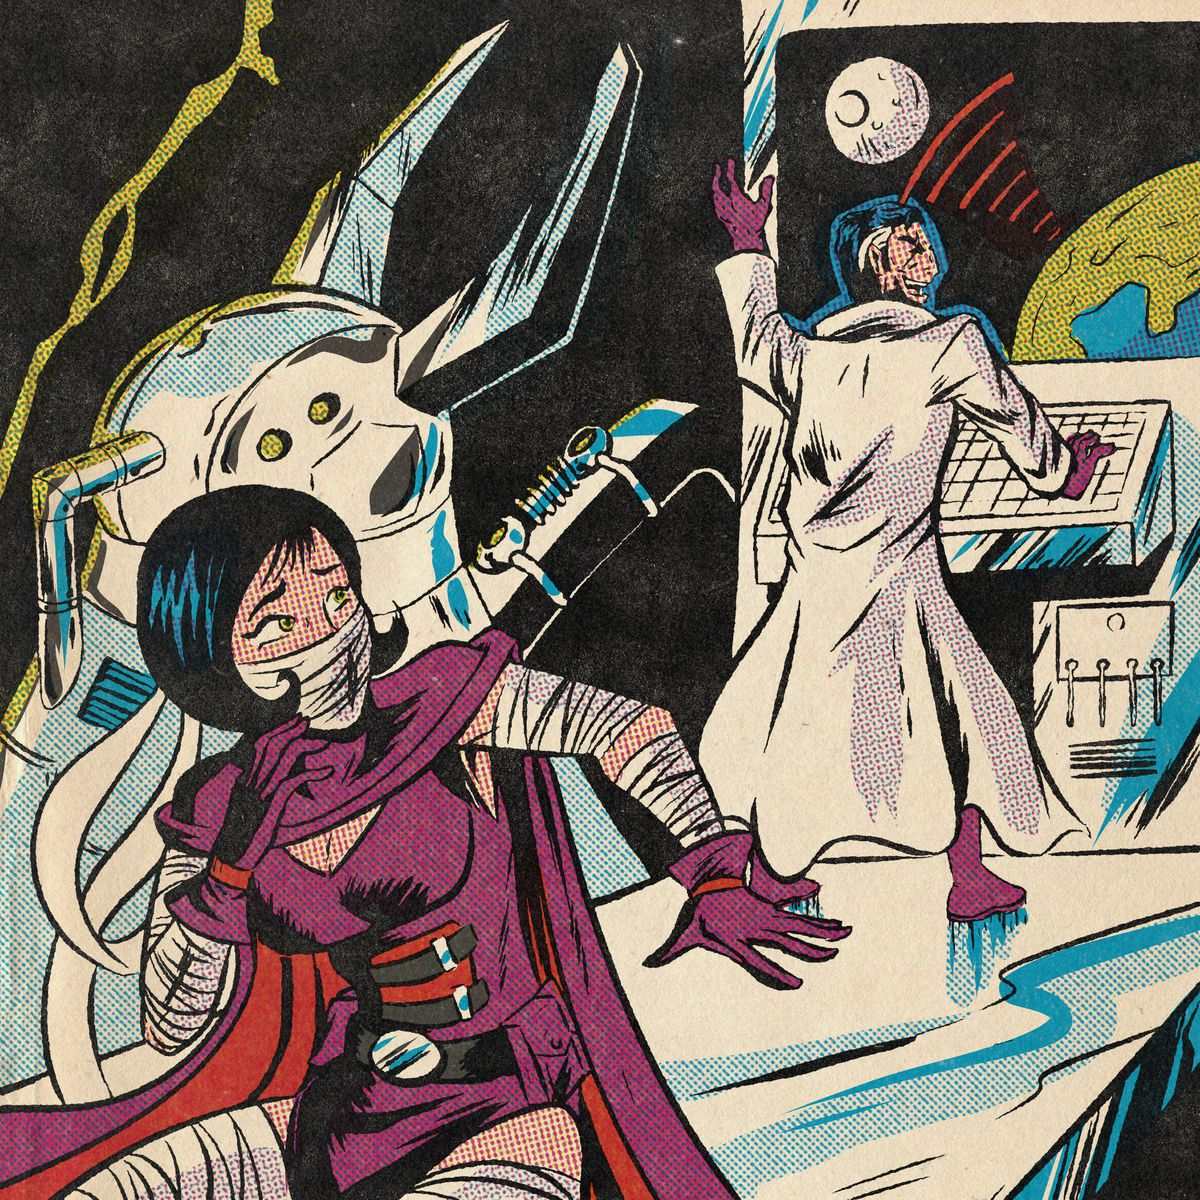 A woman superhero ides behind a bizzare machine while a villain locks on to the moon with a super weapon.